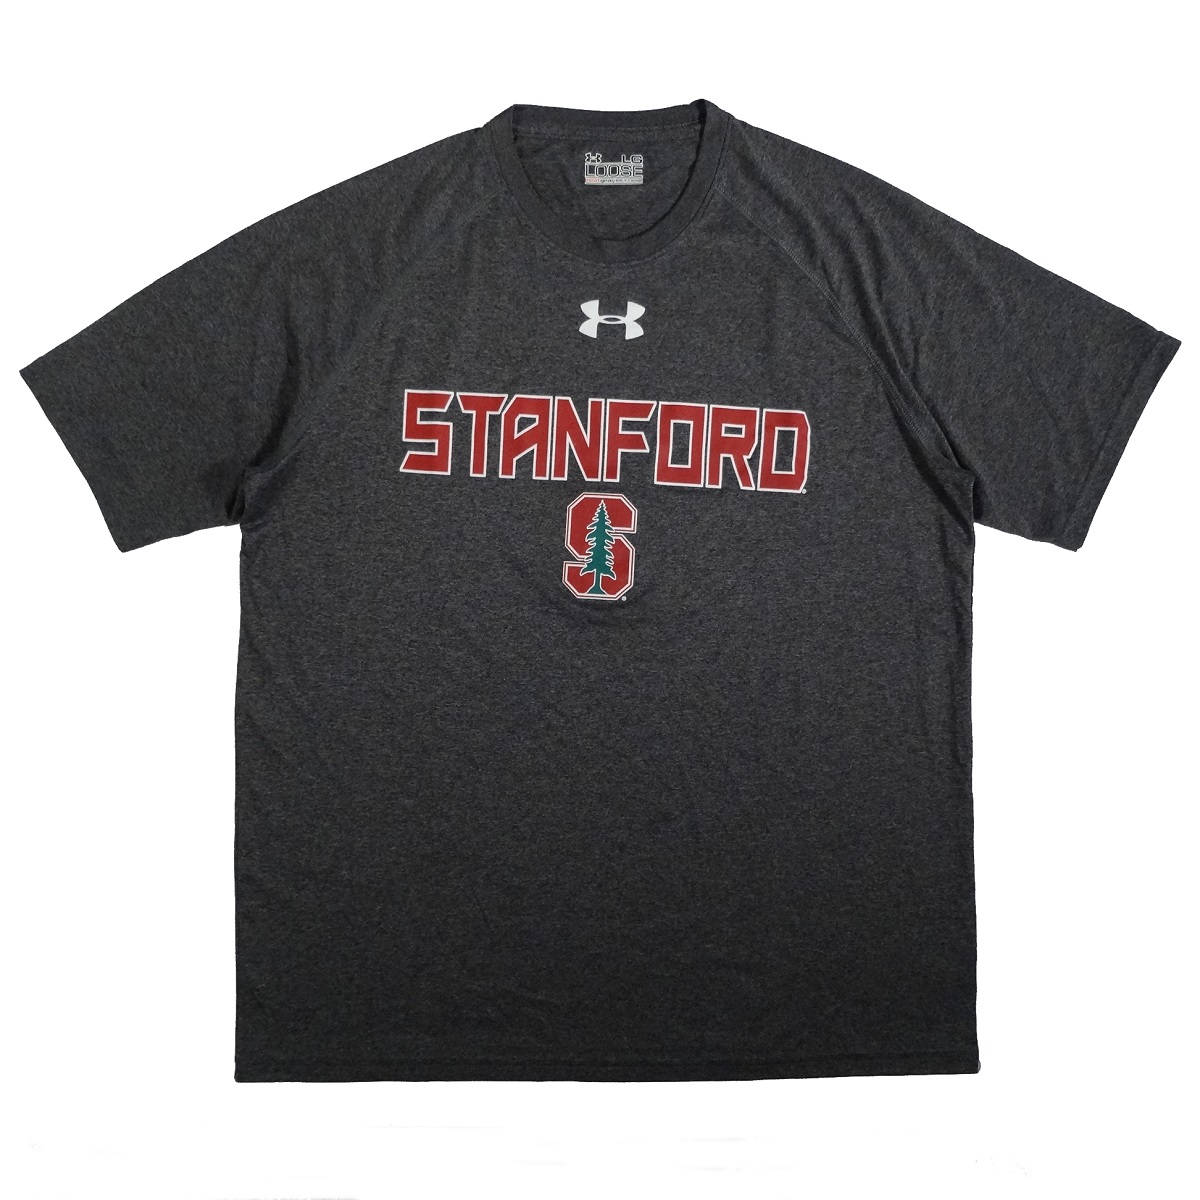 Stanford Cardinal Under Armour Shirt Front